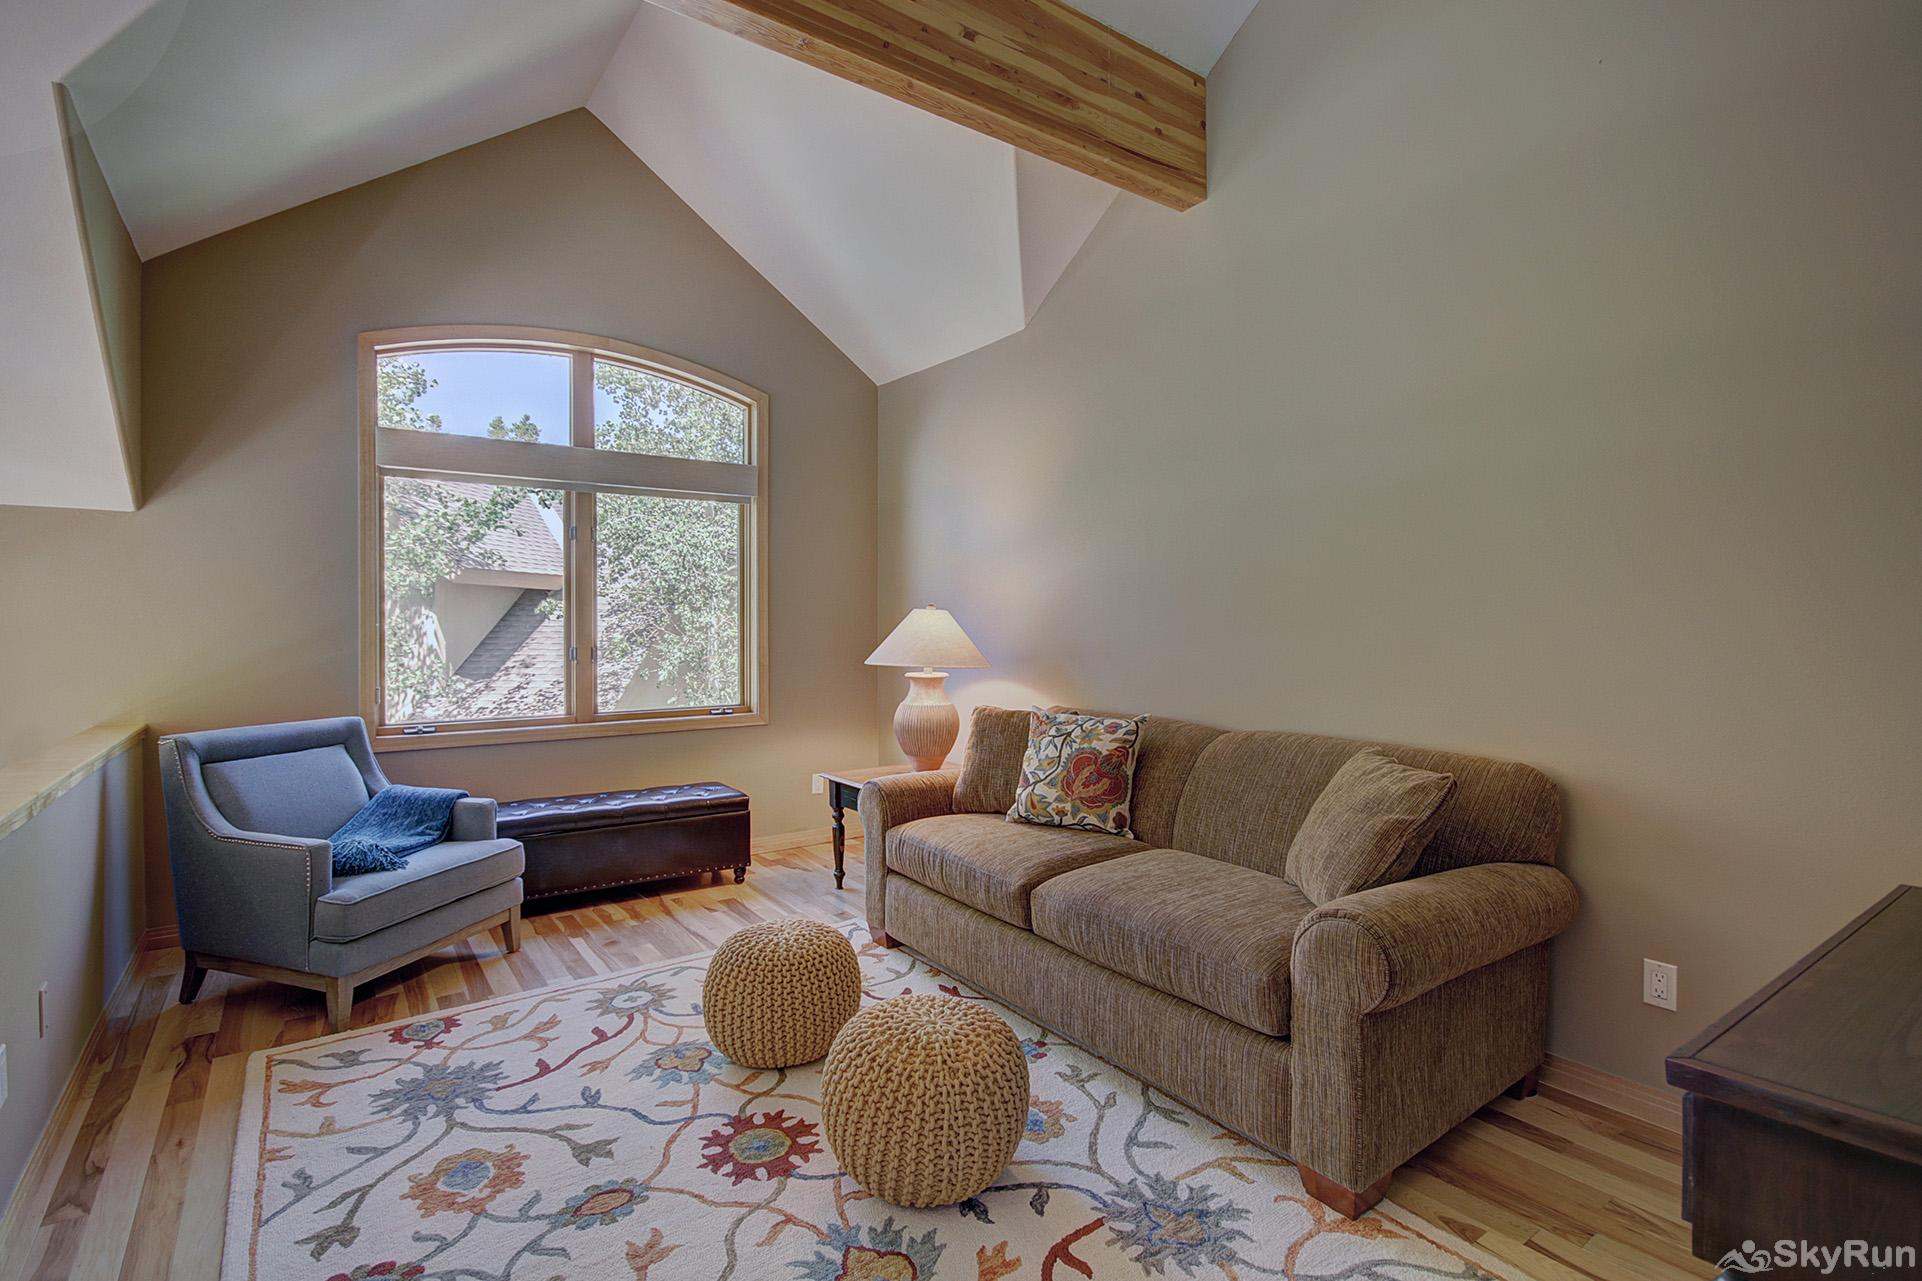 Tall Pines Lodge Queen sleeper sofa provides additional accommodations for 2 in the loft